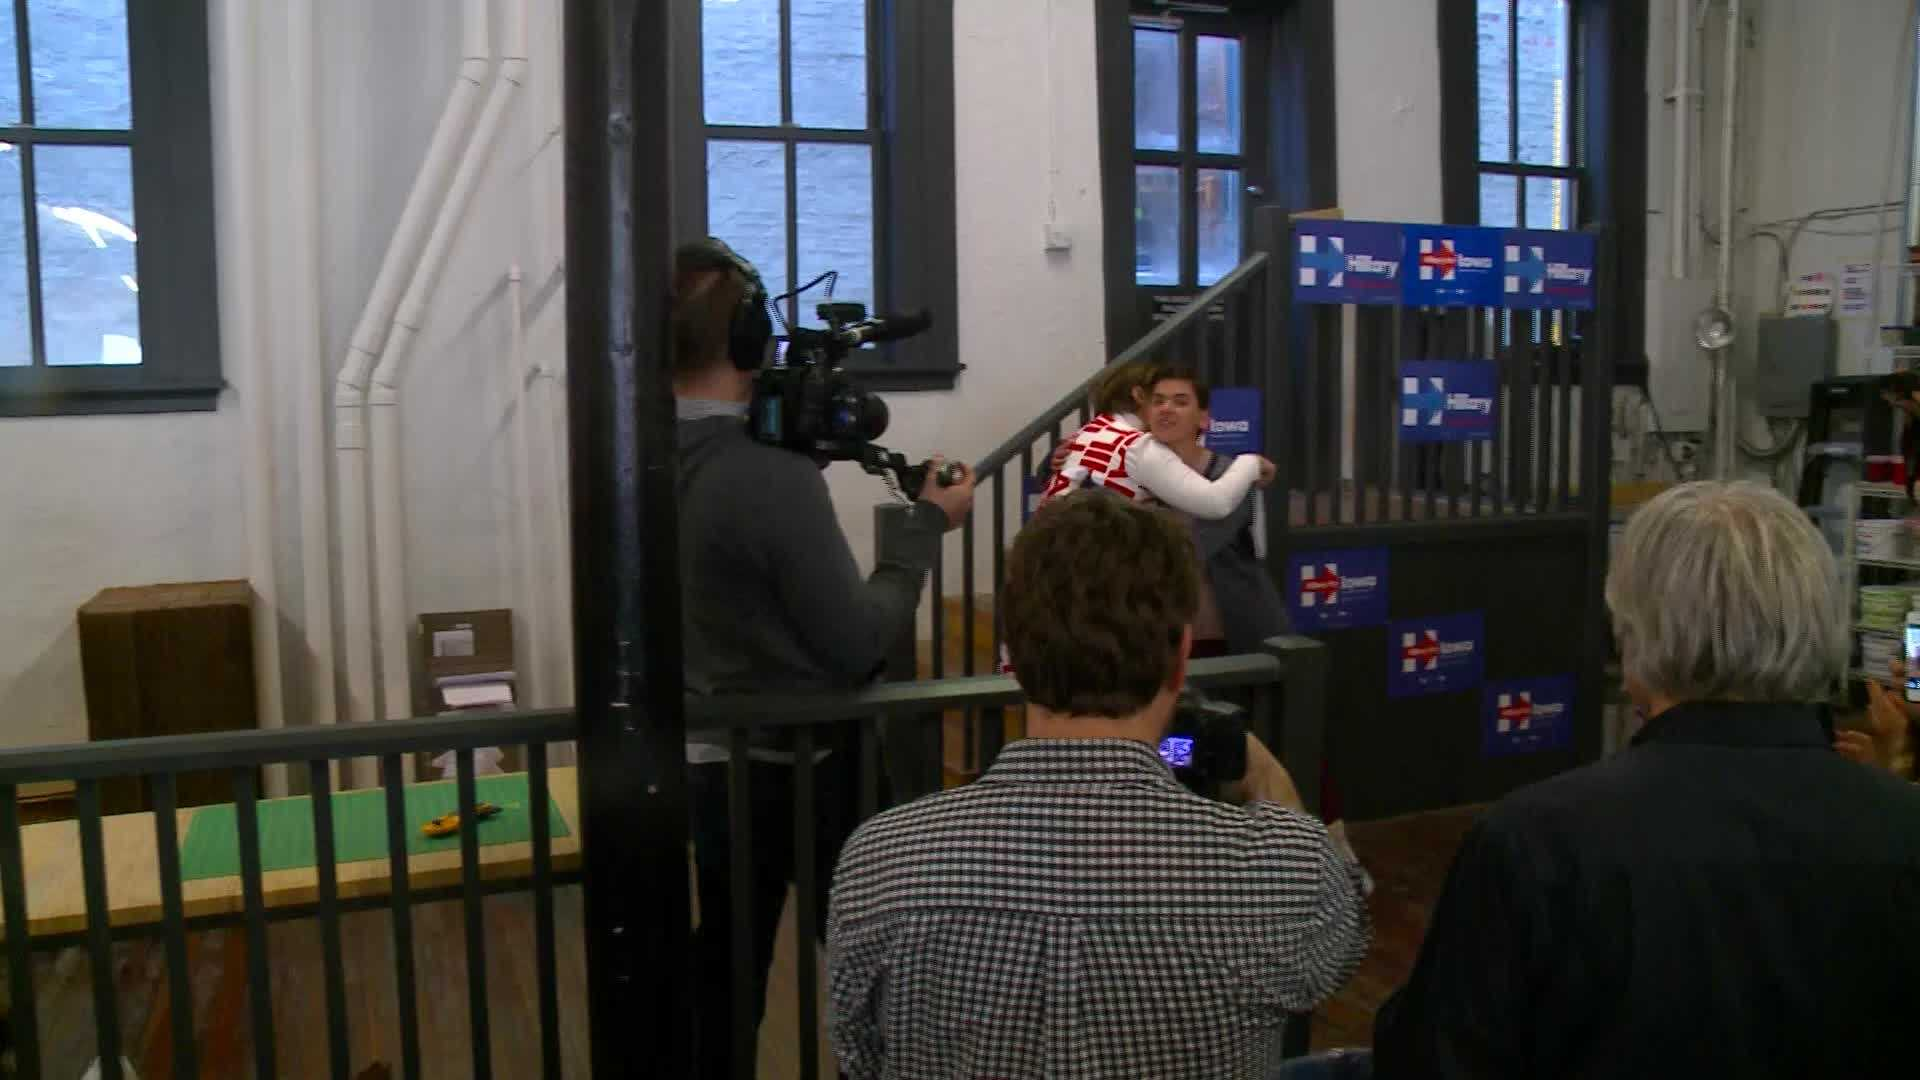 Some Iowa voters said Clinton's celebrity draw could help gain support from youth.